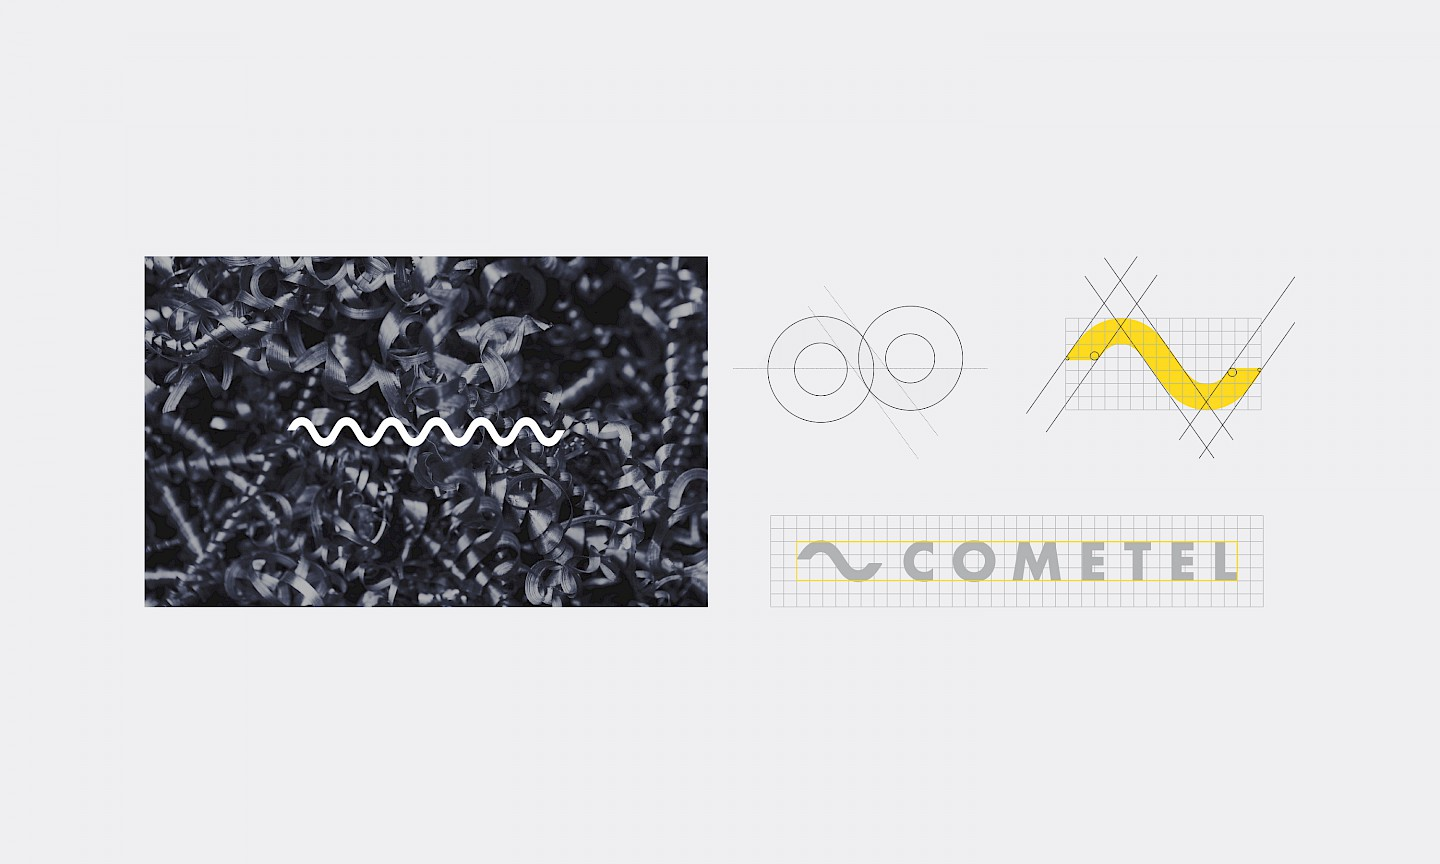 move cometel logo design branding technology